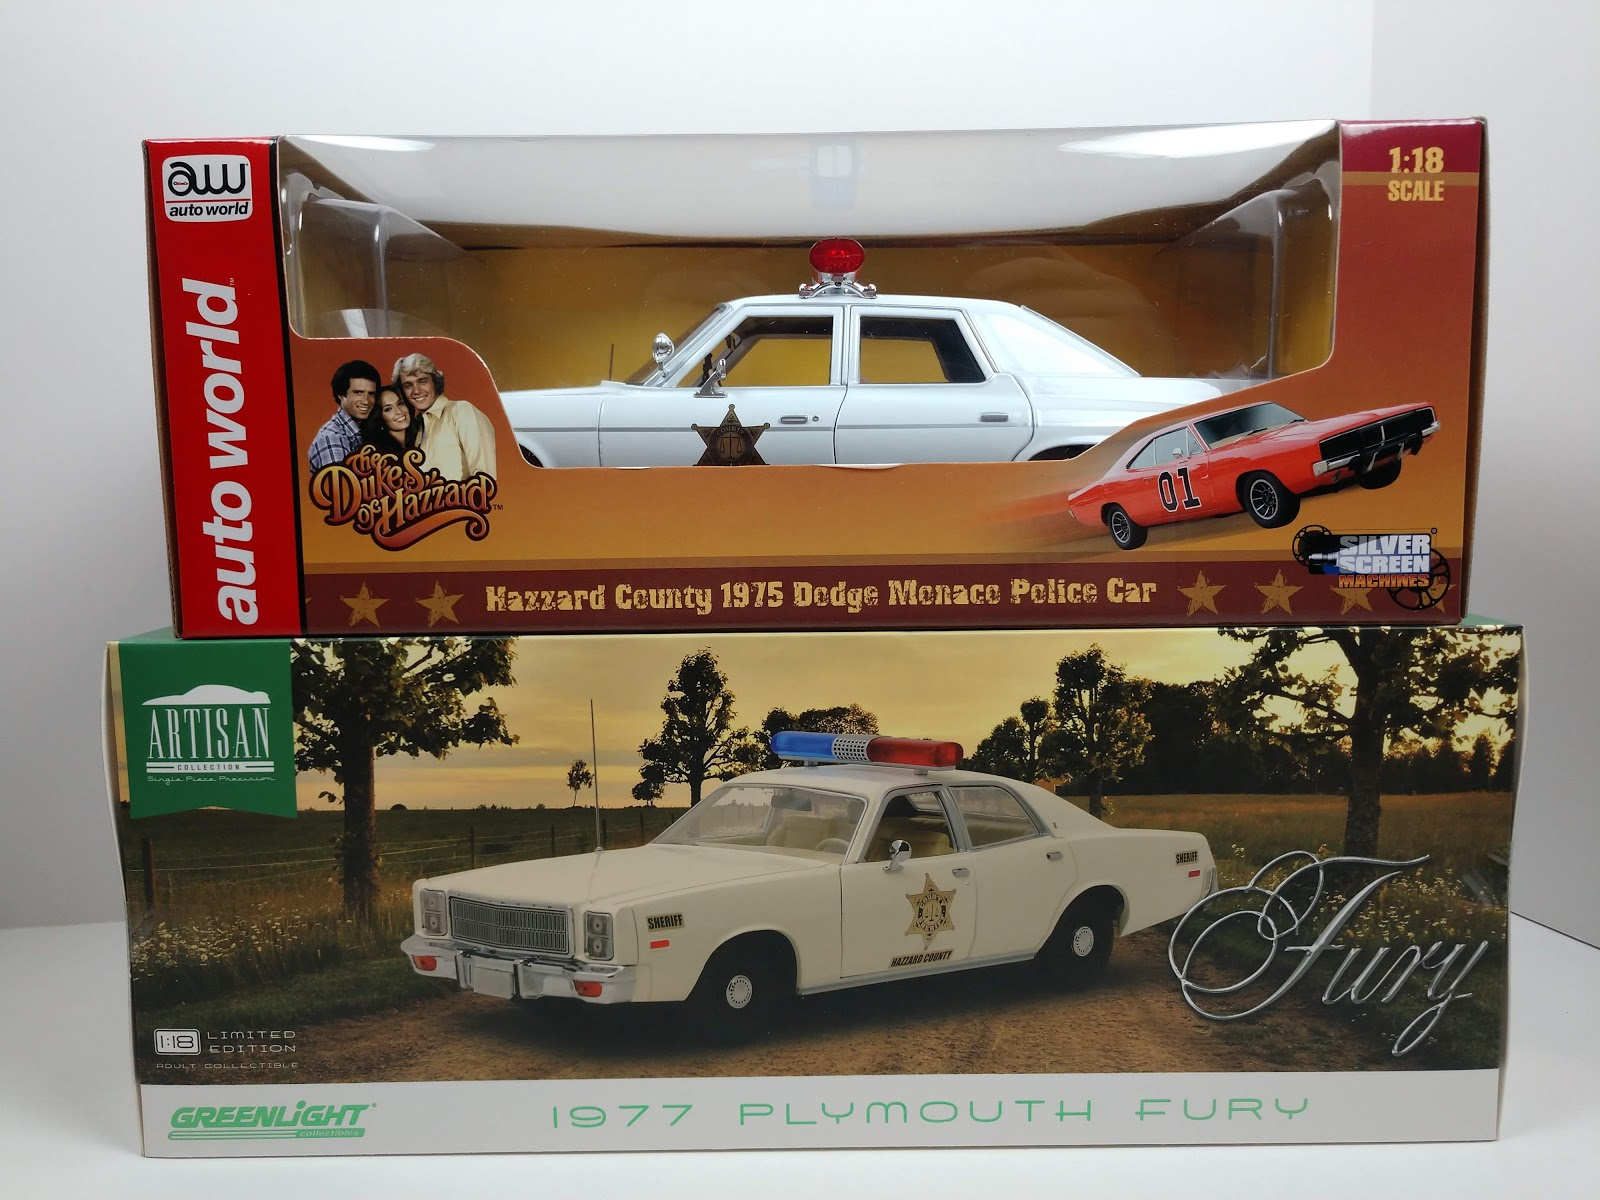 1:64 GreenLight DUKES OF HAZZARD Roscoe P Coltrane MONACO Sheriff Patrol Car